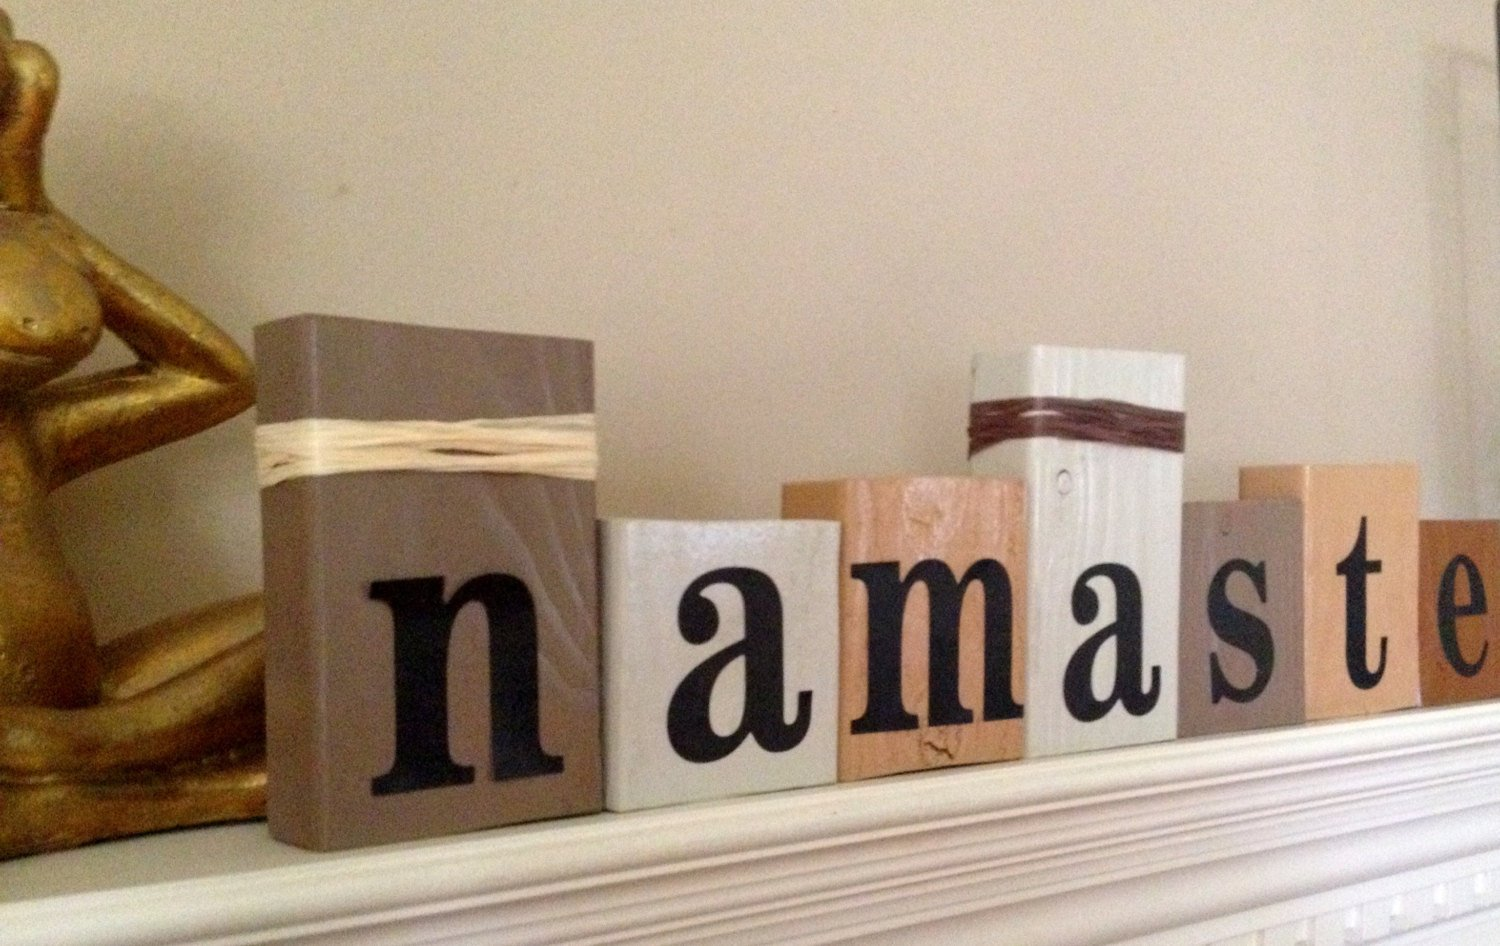 NAMASTE...yoga stacking wood word block set for inspirational home decor studio decor... by BLOCK PARTY (Image #2)